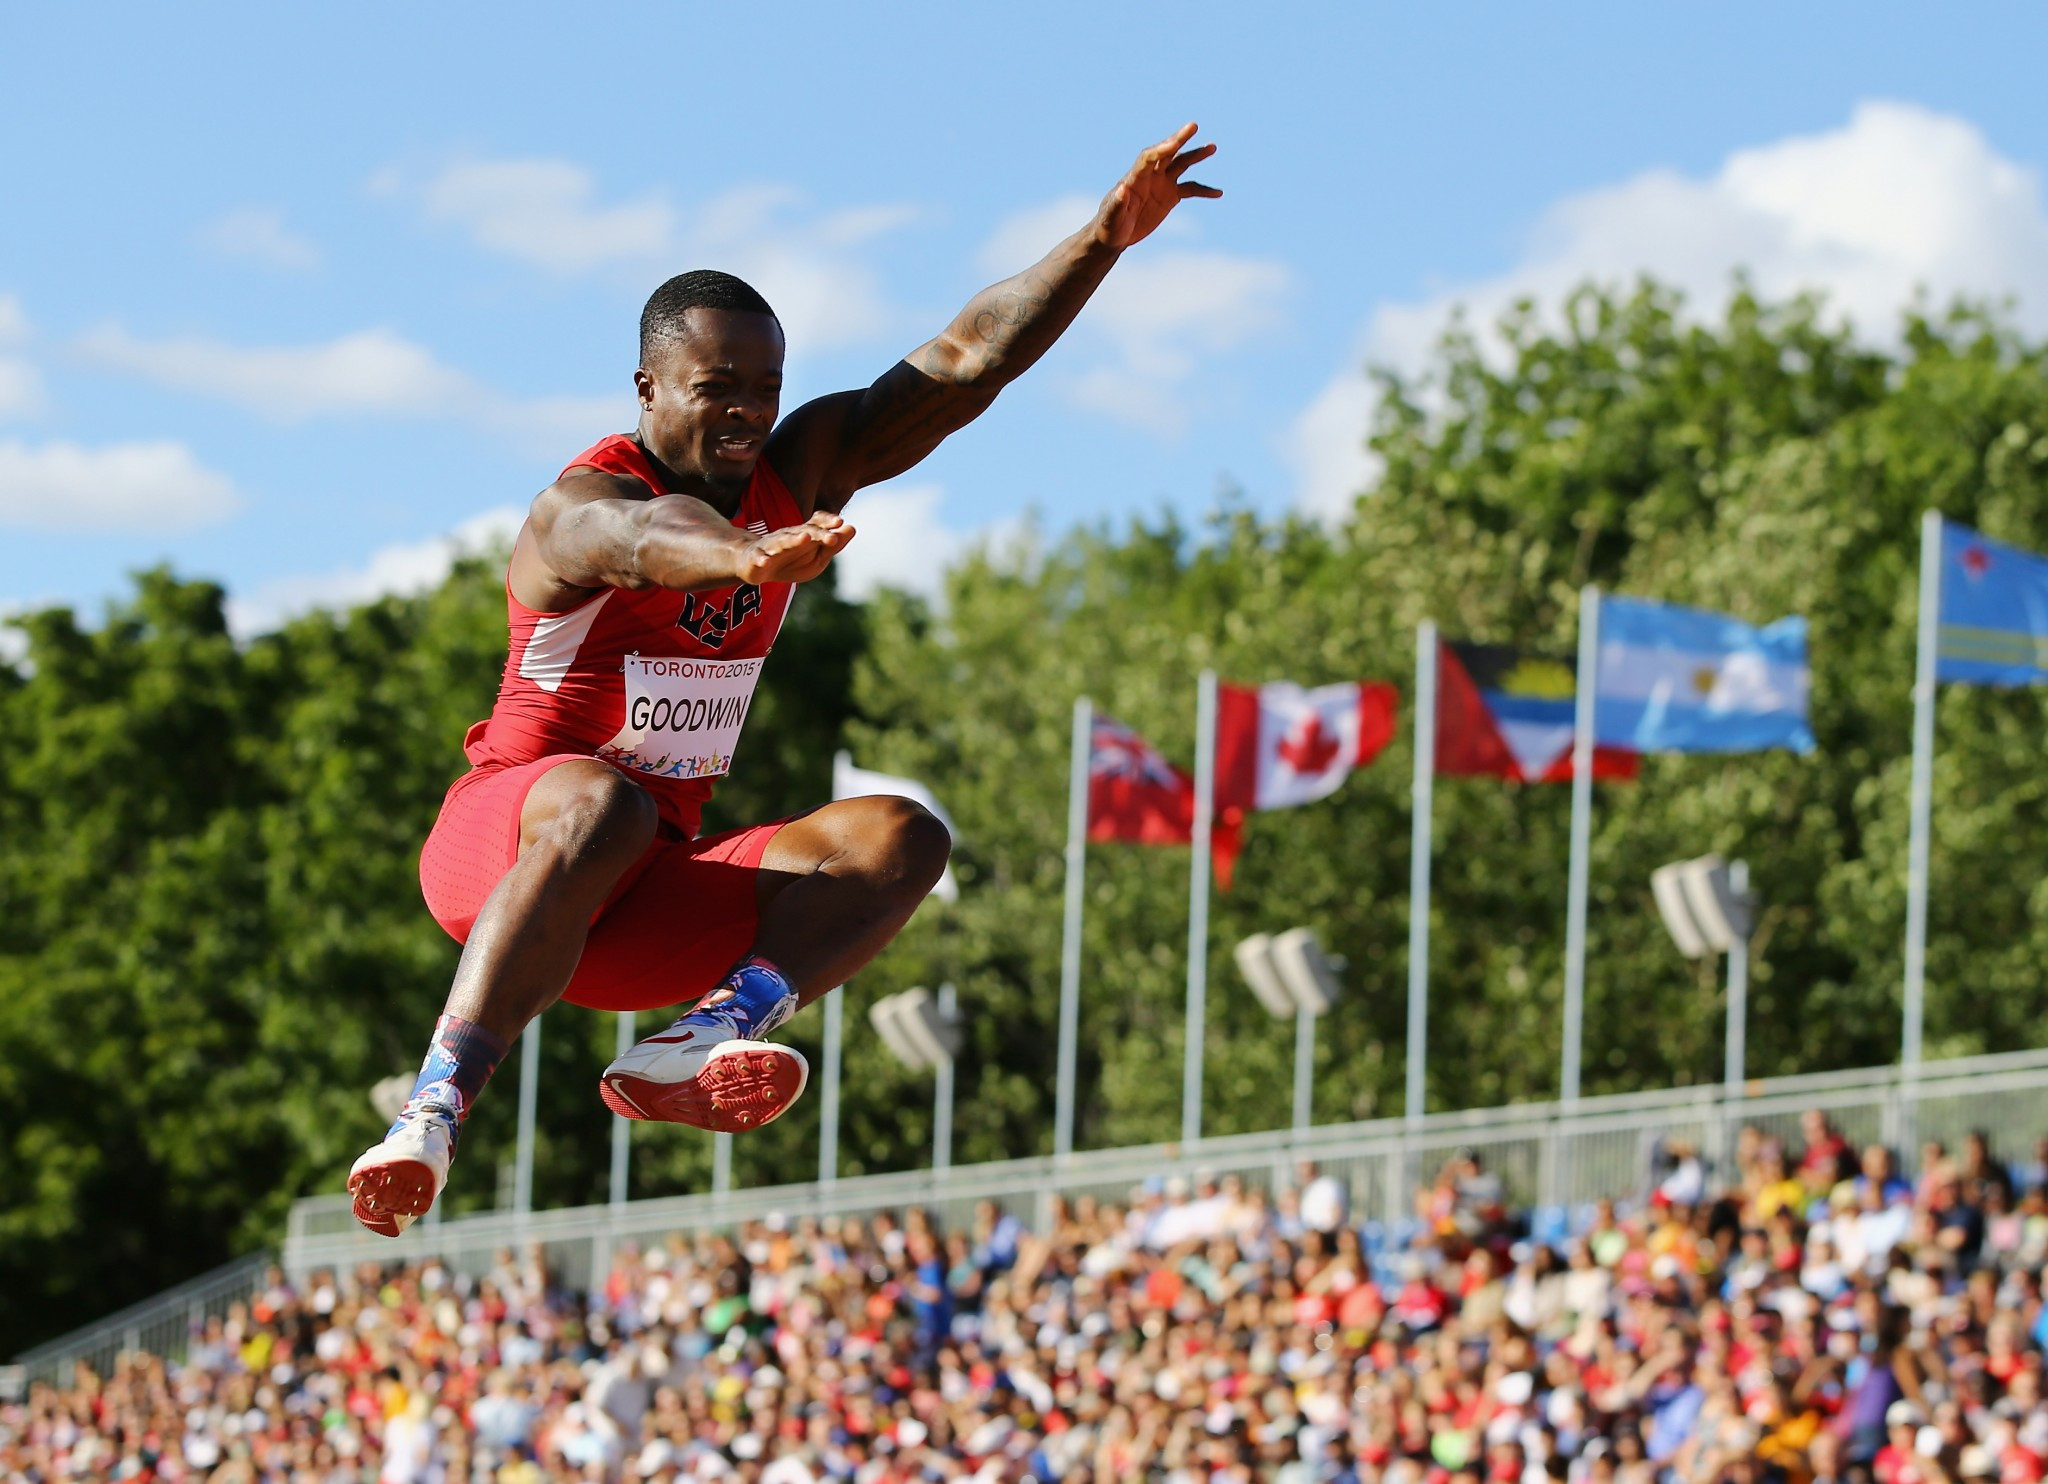 Goodwin claims to have retired from long jump after being handed one-year ban by USADA